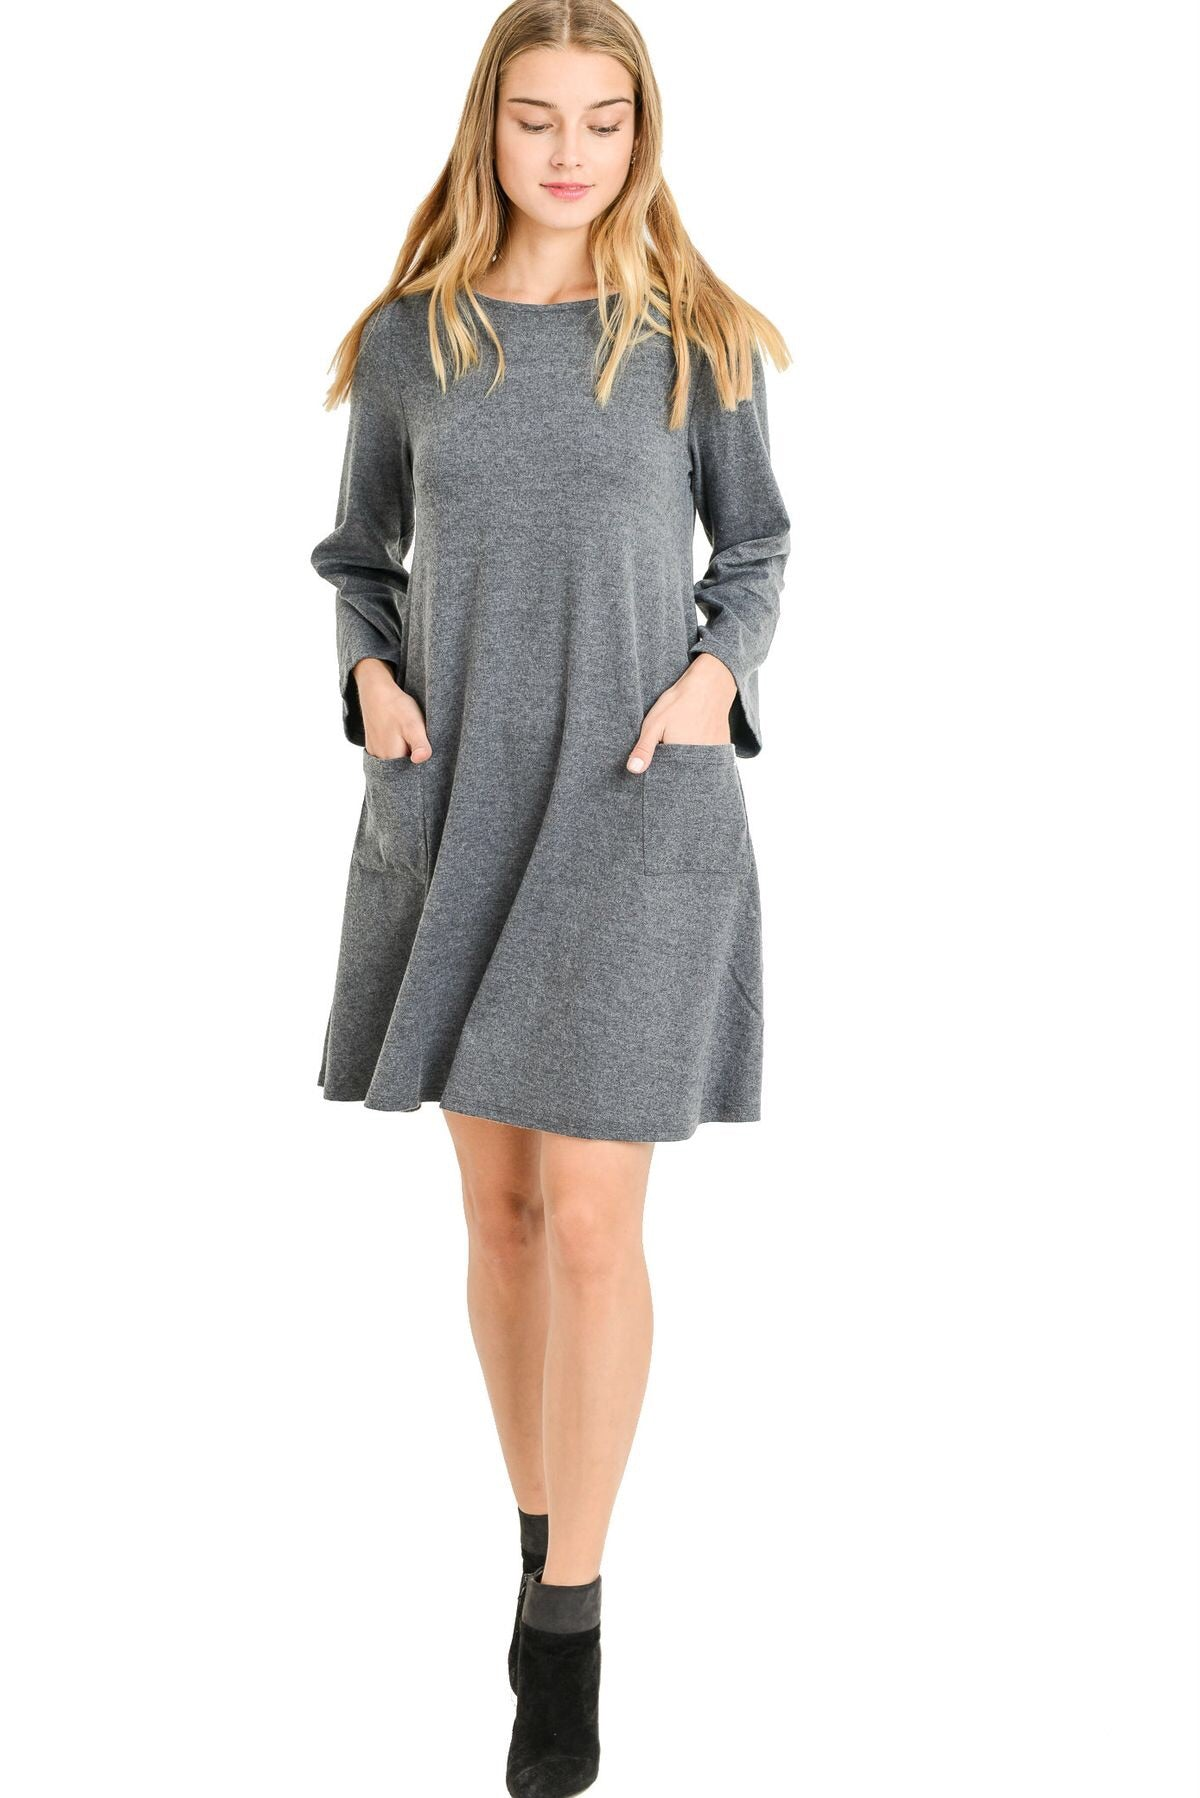 Layla Swing Dress in Dark Gray